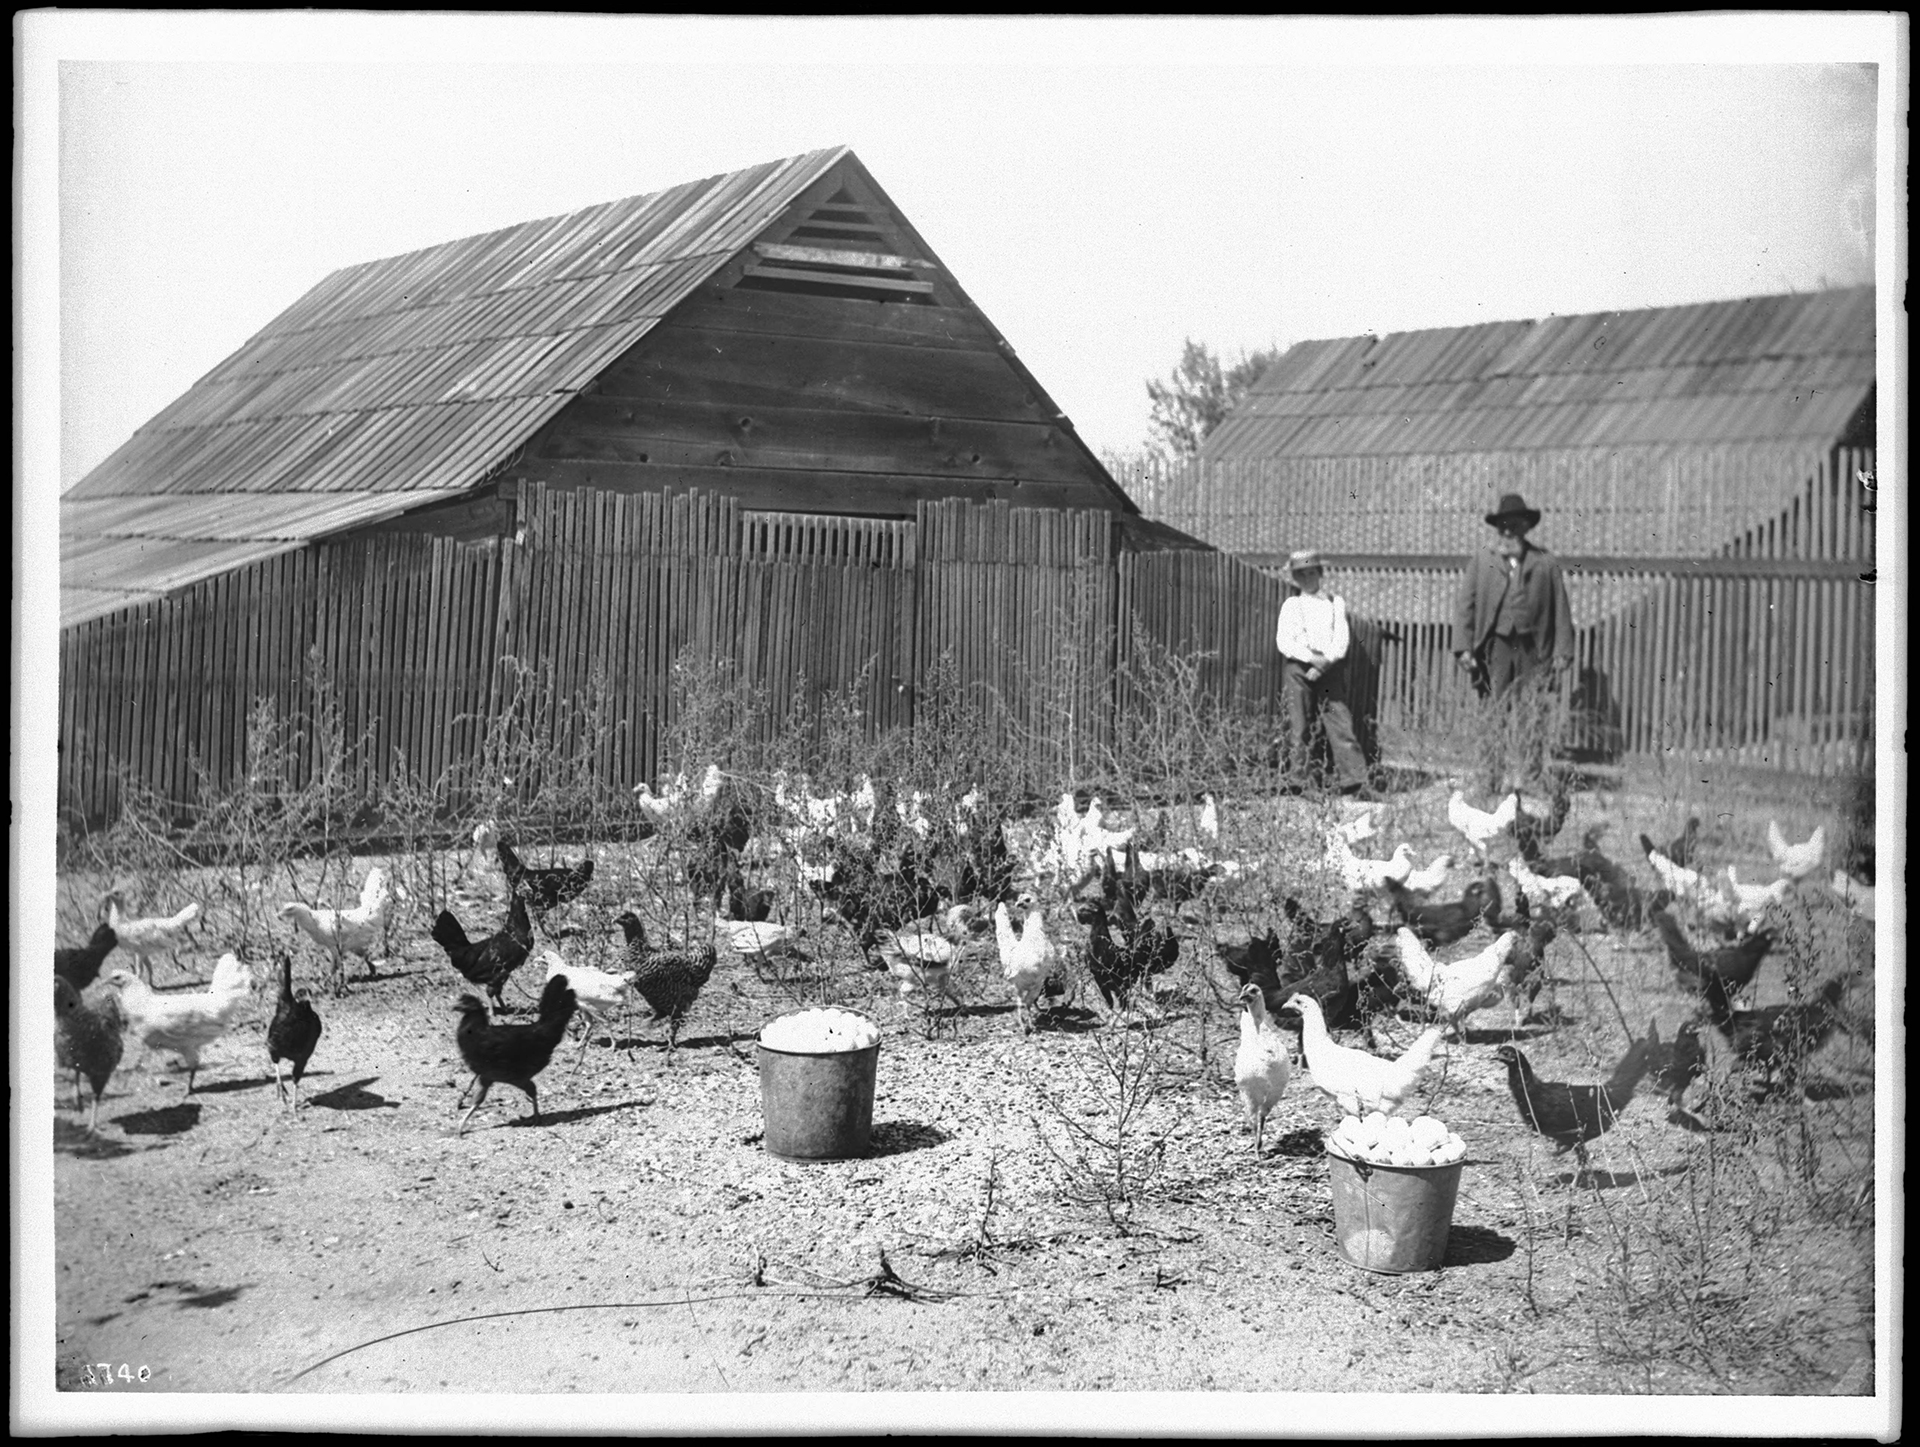 Chickens in an Outdoor Pen on a Chicken Ranch ca. 1900